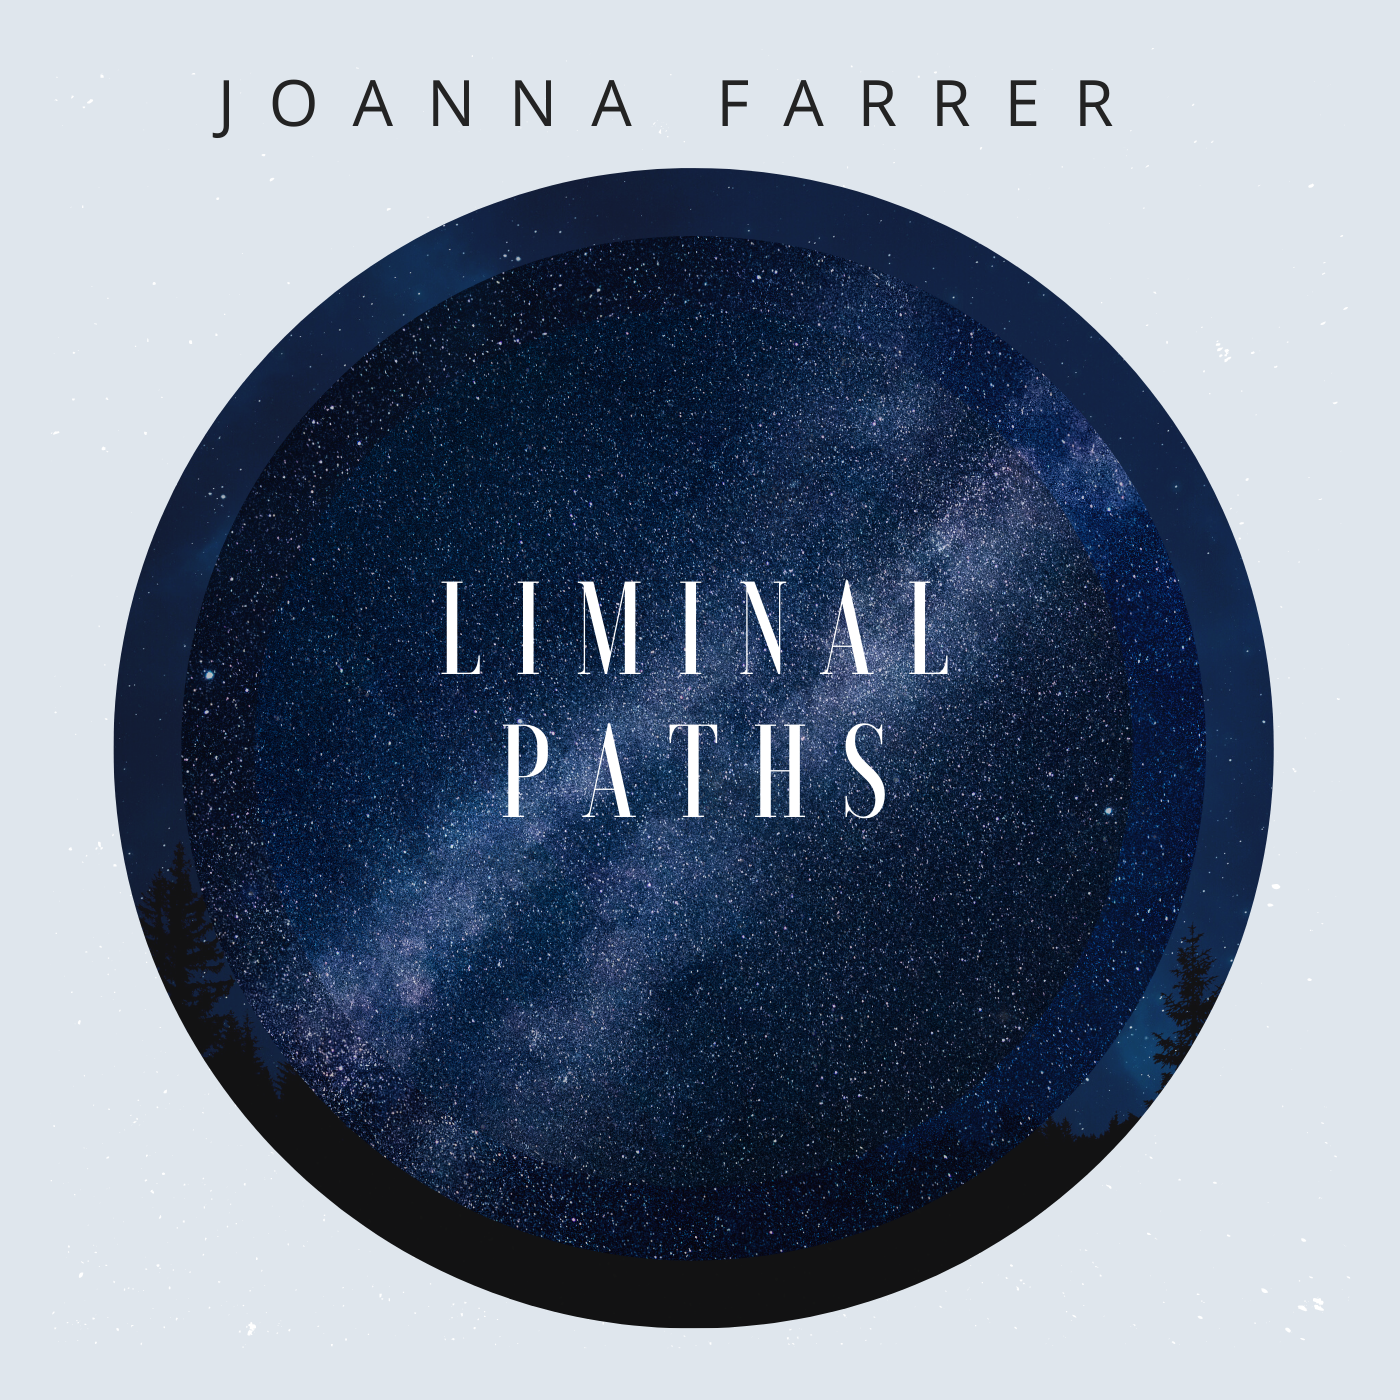 Pre-Order Liminal Paths - Signed Limited LP Edition